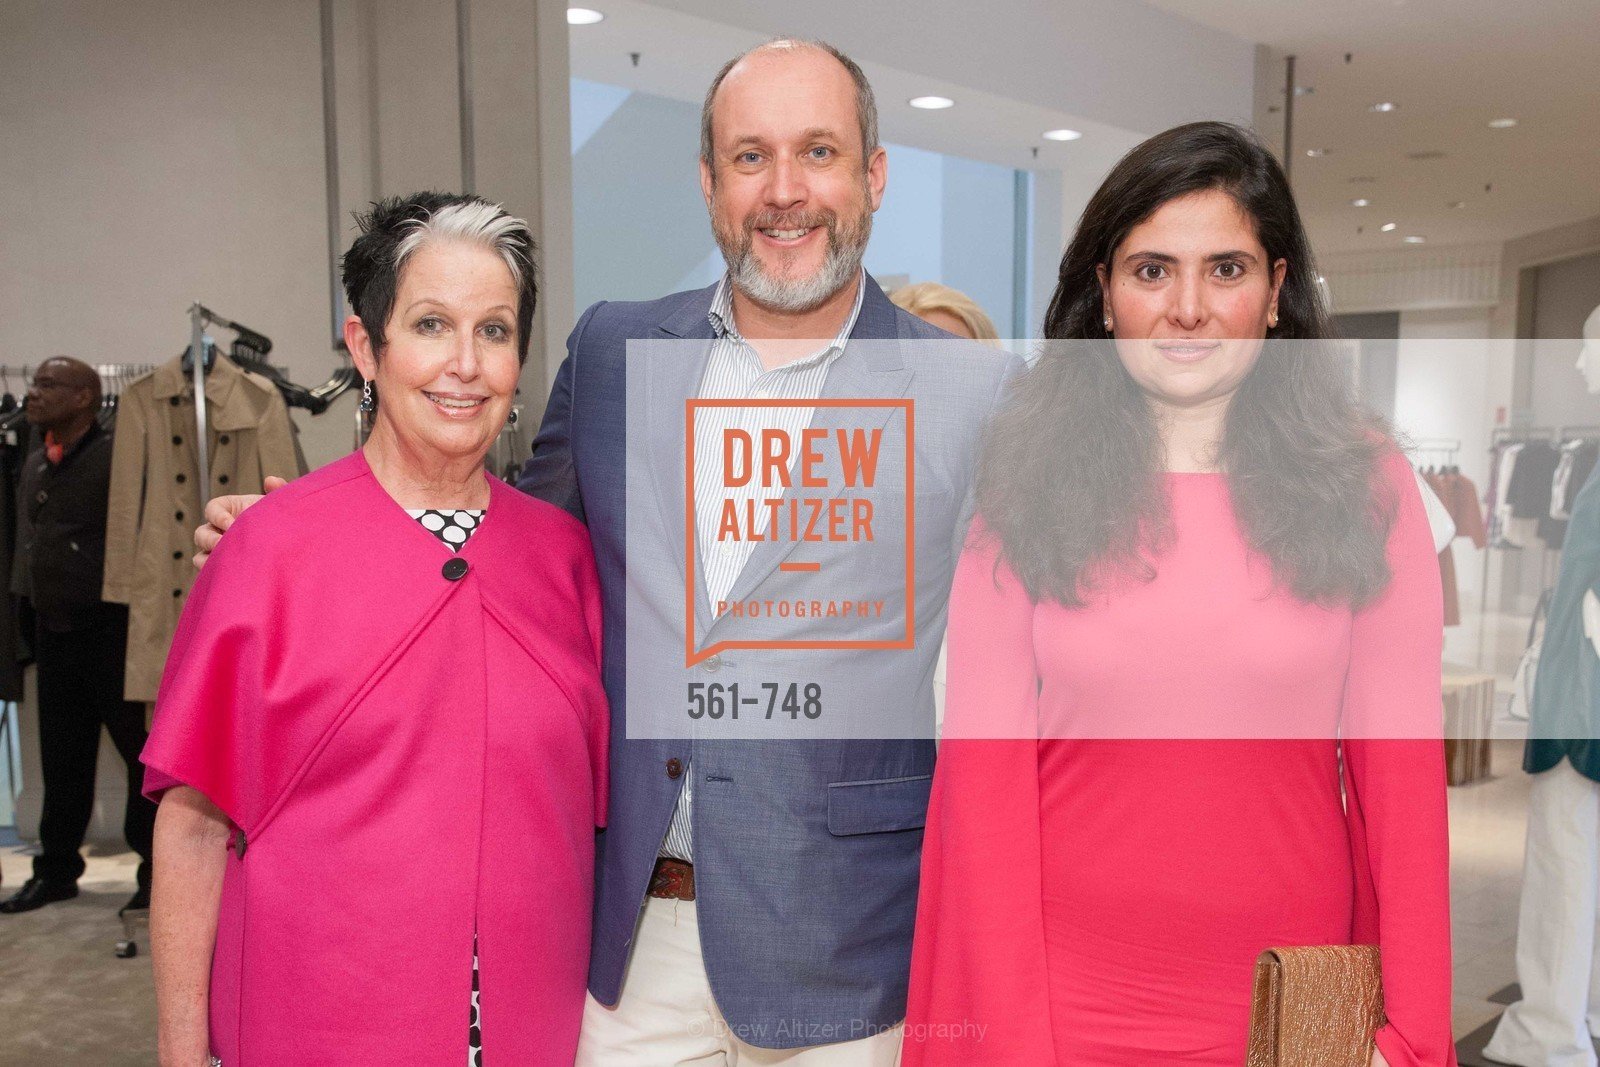 Karen Kubin, Peter Copping, Minal Jethmal, PETER COPPING Makes Personal Appearance at SAKS FIFTH AVENUE, US, May 21st, 2015,Drew Altizer, Drew Altizer Photography, full-service agency, private events, San Francisco photographer, photographer california